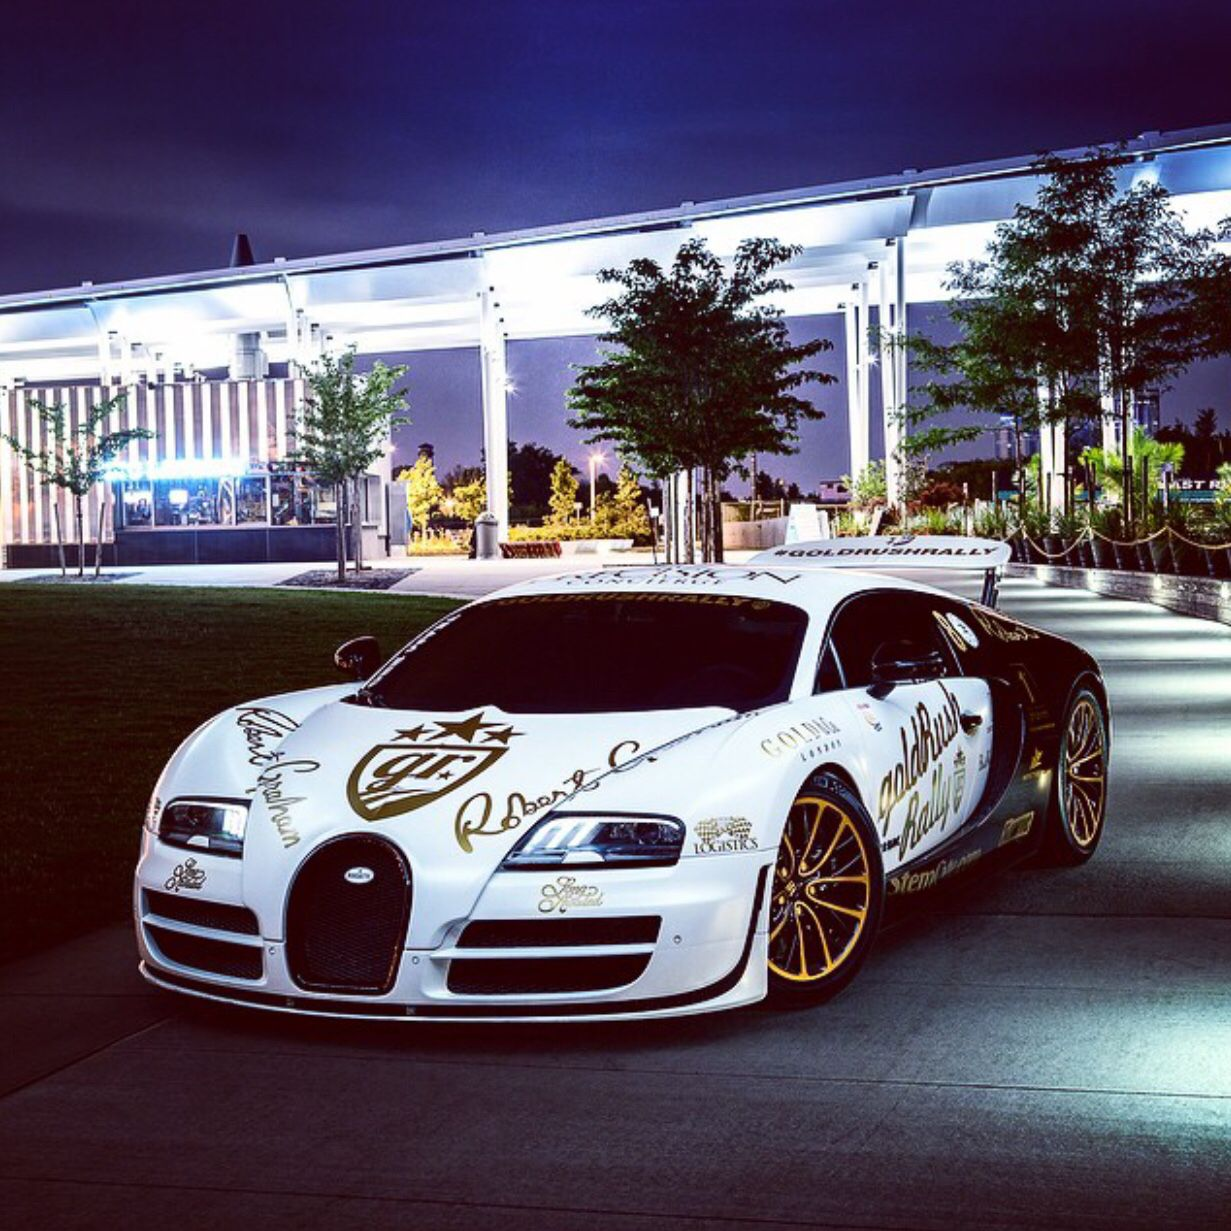 Bugatti Veyron Super Sport painted in White and Black ...